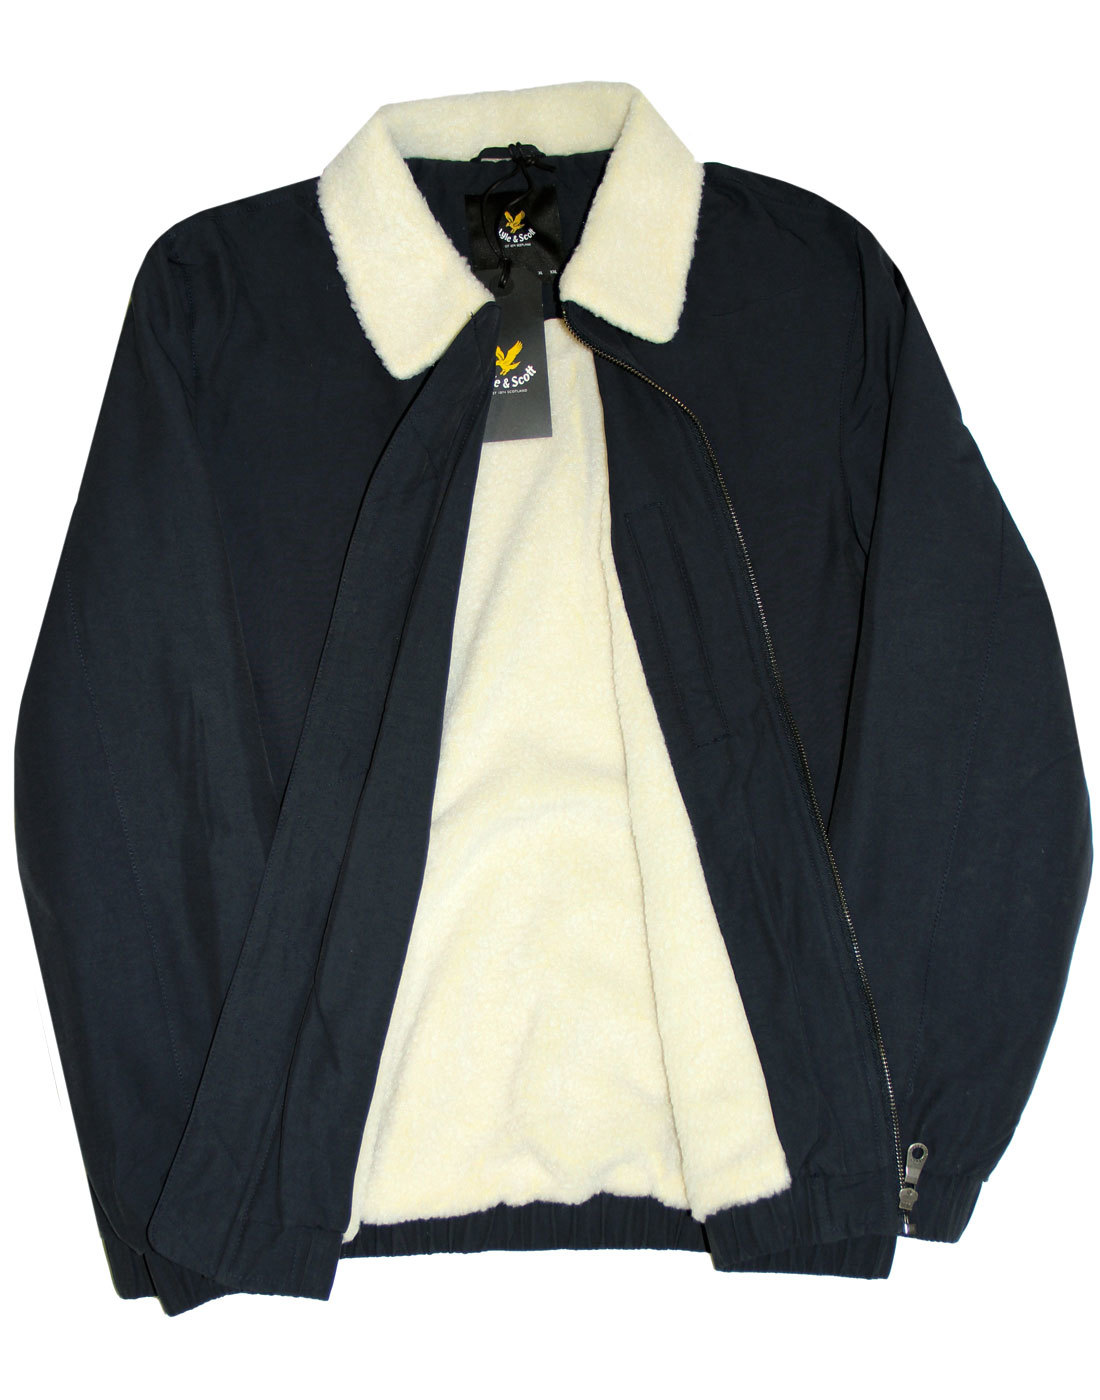 c94361105d1 LYLE   SCOTT Retro 70s Mod Shearling Lined Bomber Jacket in Navy